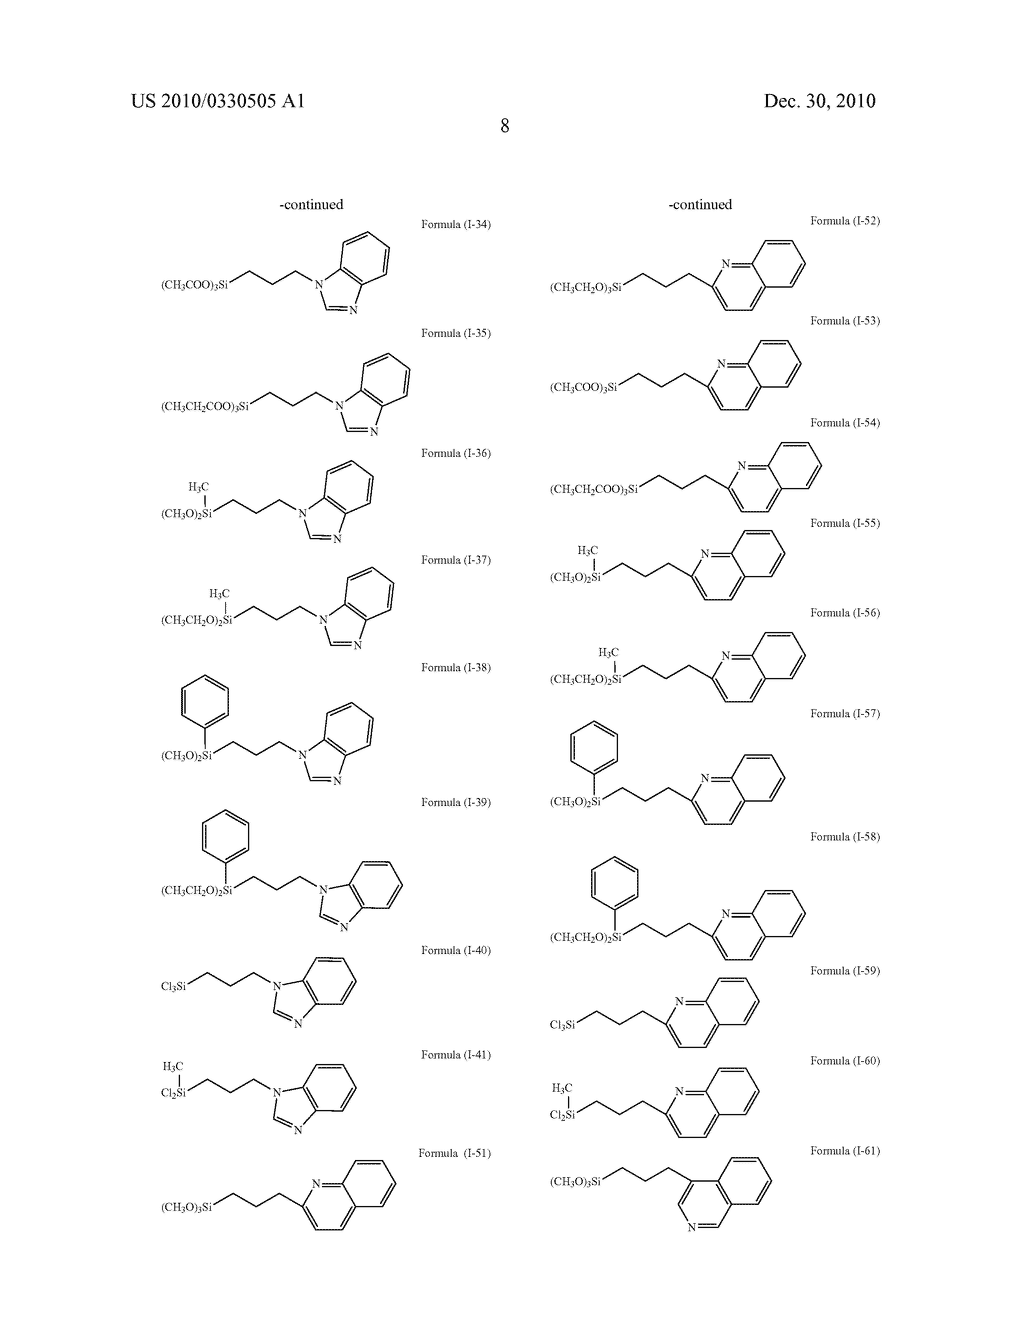 RESIST UNDERLAYER FILM FORMING COMPOSITION CONTAINING SILICONE HAVING CYCLIC AMINO GROUP - diagram, schematic, and image 11